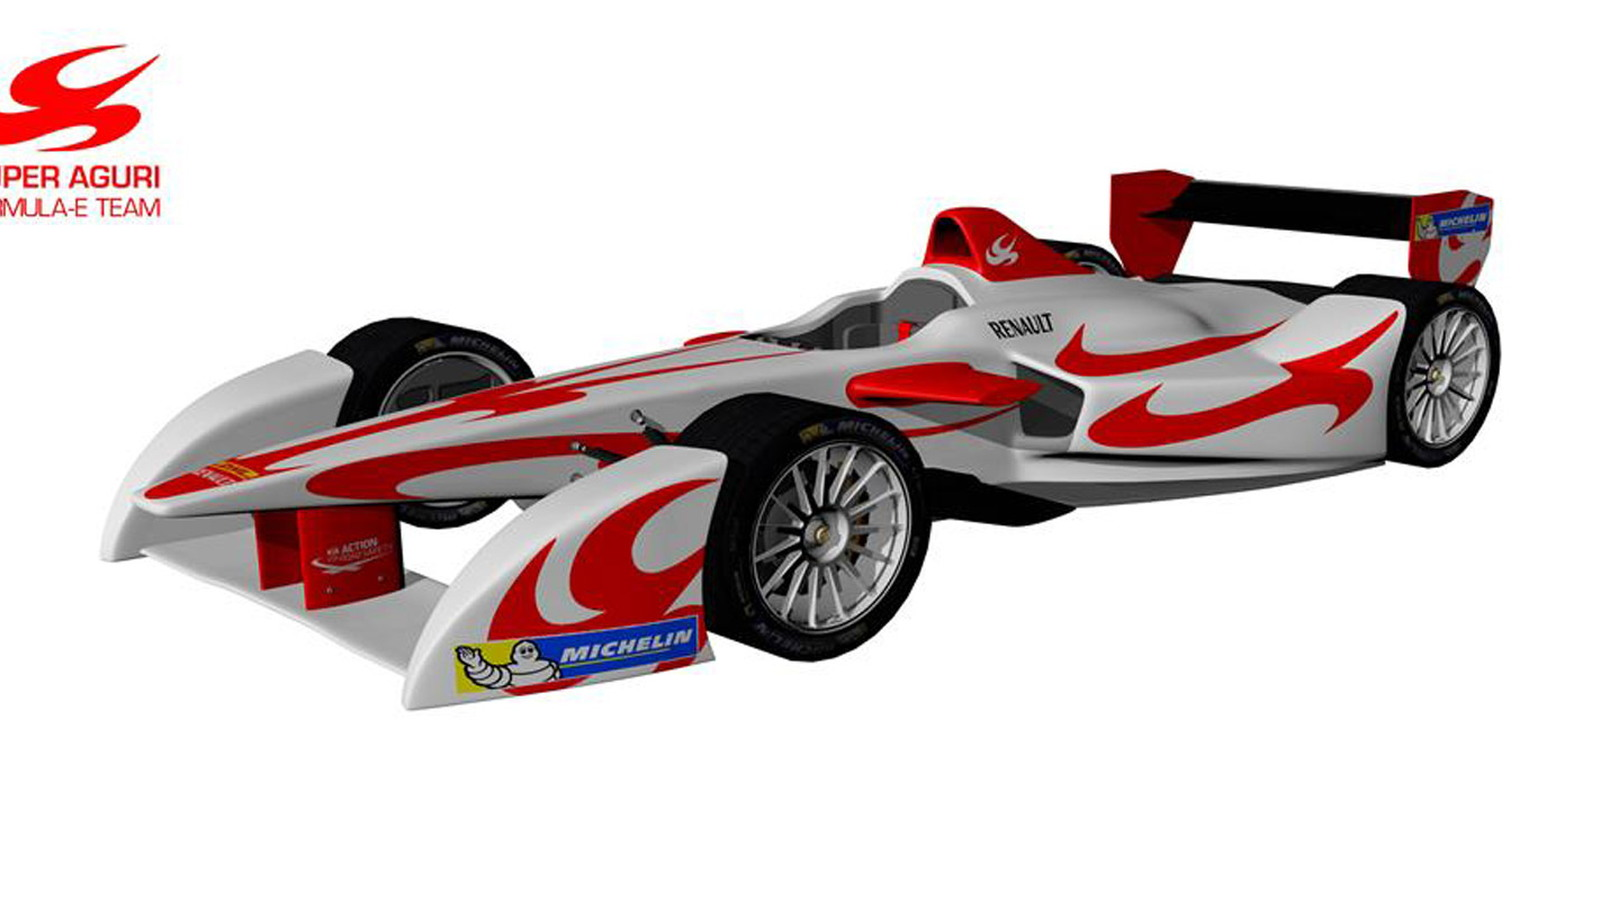 2014 Super Aguri Formula E electric race car